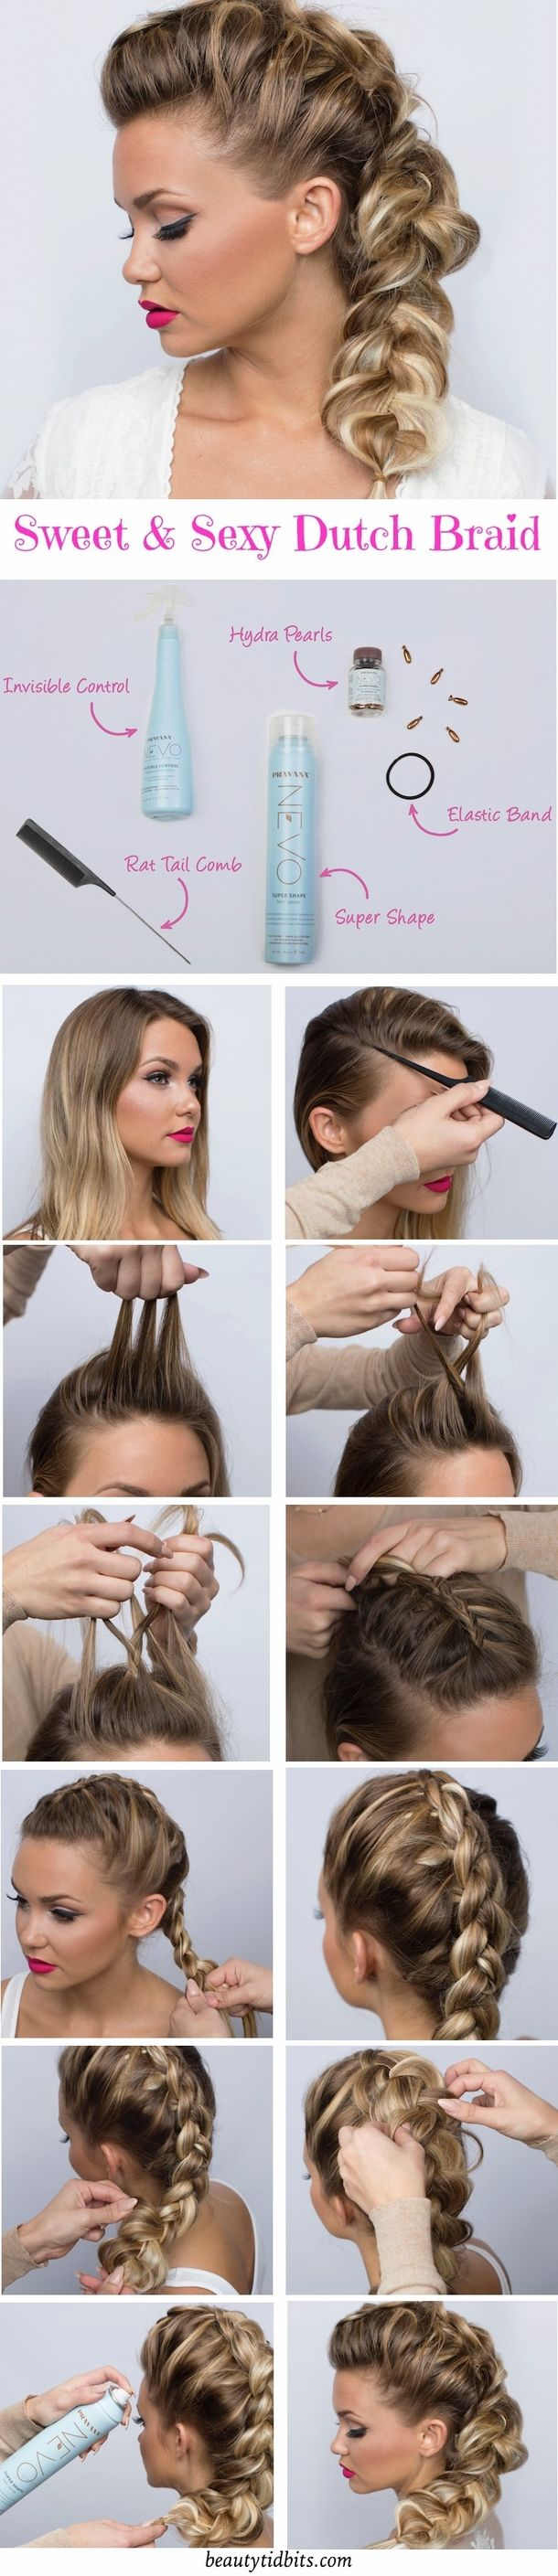 2016 is the year for new, fun, fresh and trendy hairstyles! We have 10 faux hawk hairstyles for women that are a big must see.